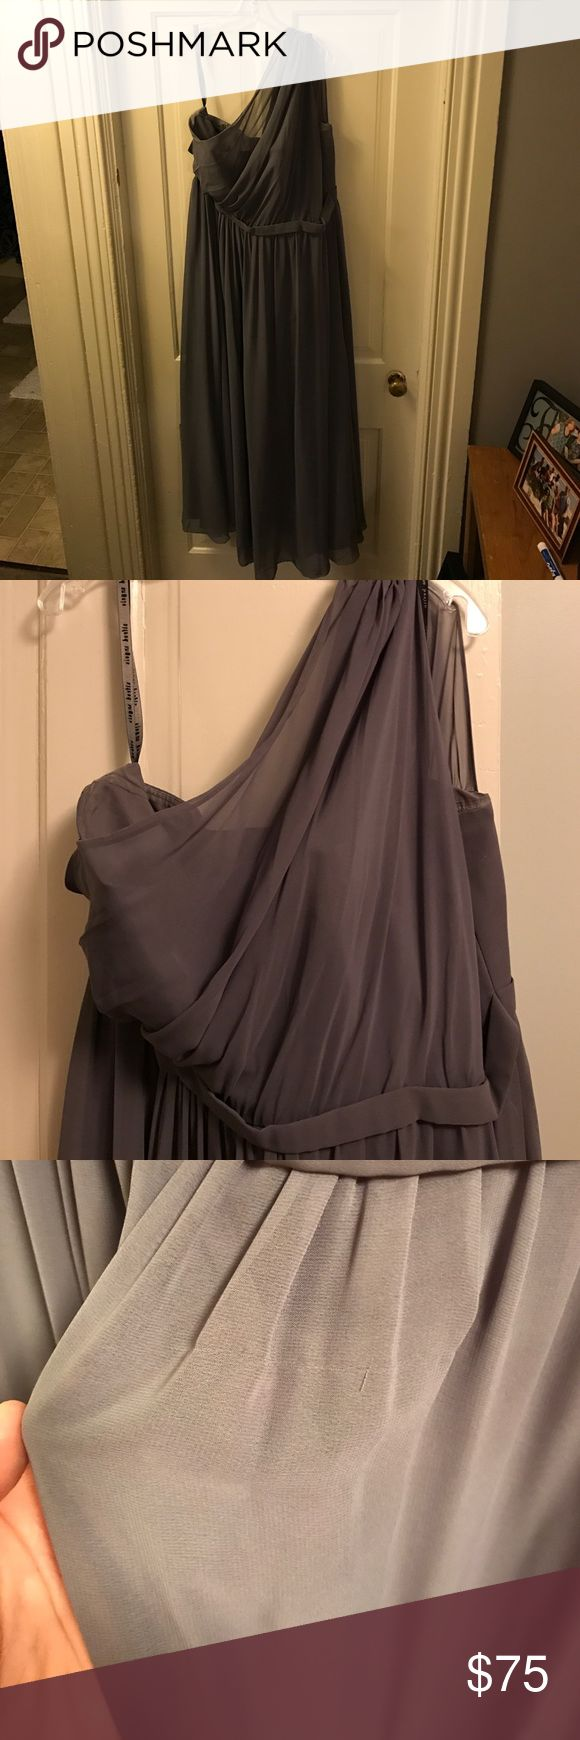 Alfred Angelo Bridesmaid Dress. Slate gray one shoulder Alfred Angelo Bridesmaids dress. Floor length. Small pull right below the belt, not too noticeable because of the gathering. True to size. I'm an 18/20. Alfred Angelo Dresses One Shoulder